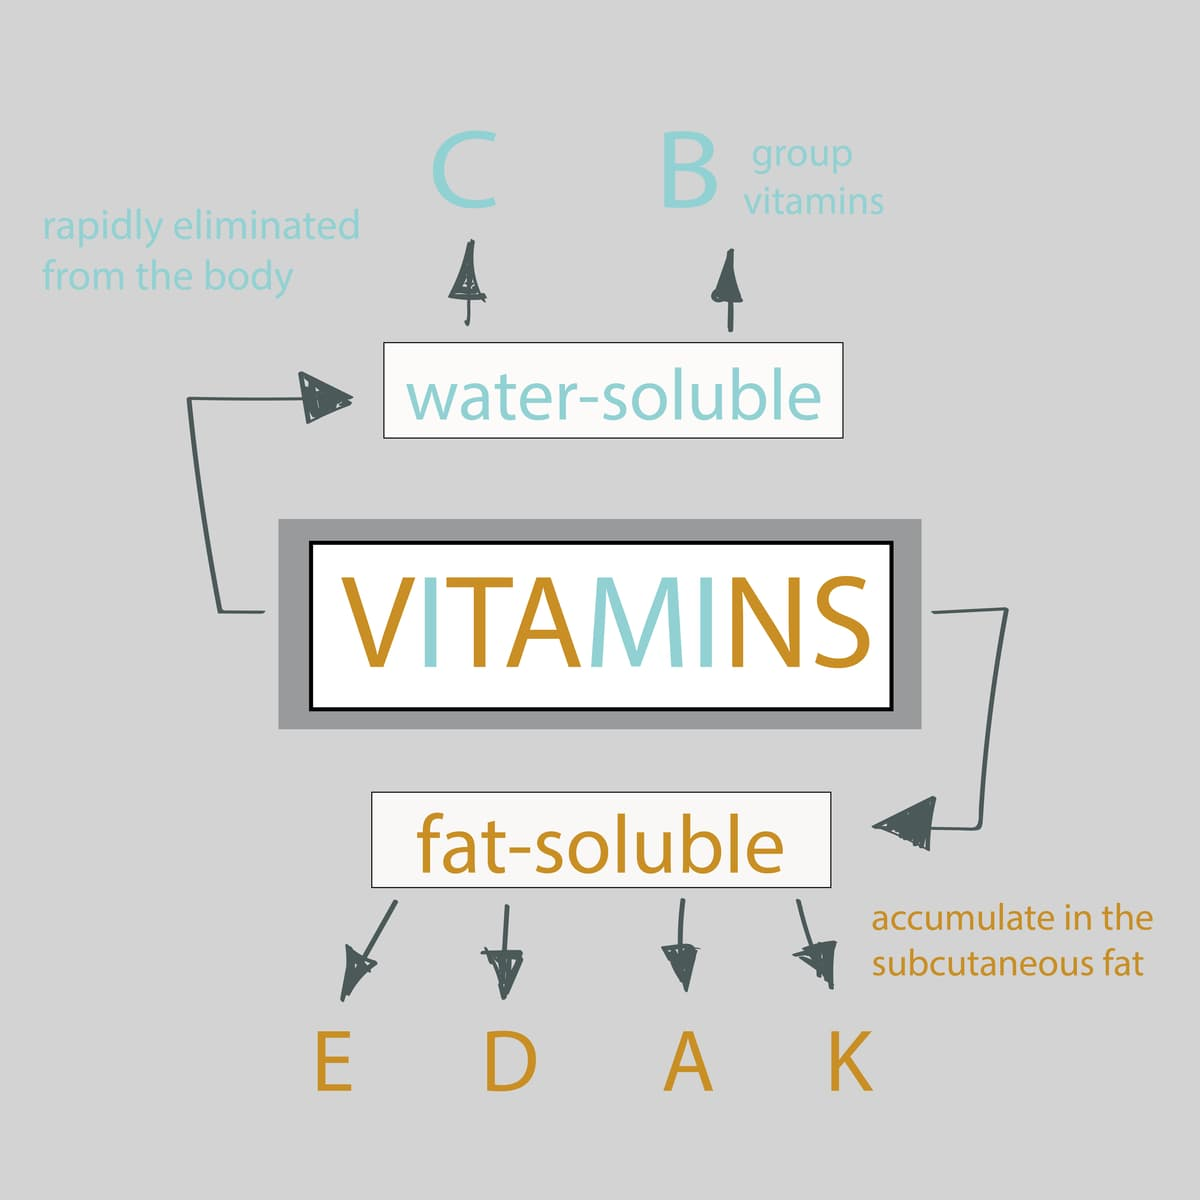 Types of Vitamins Infographic